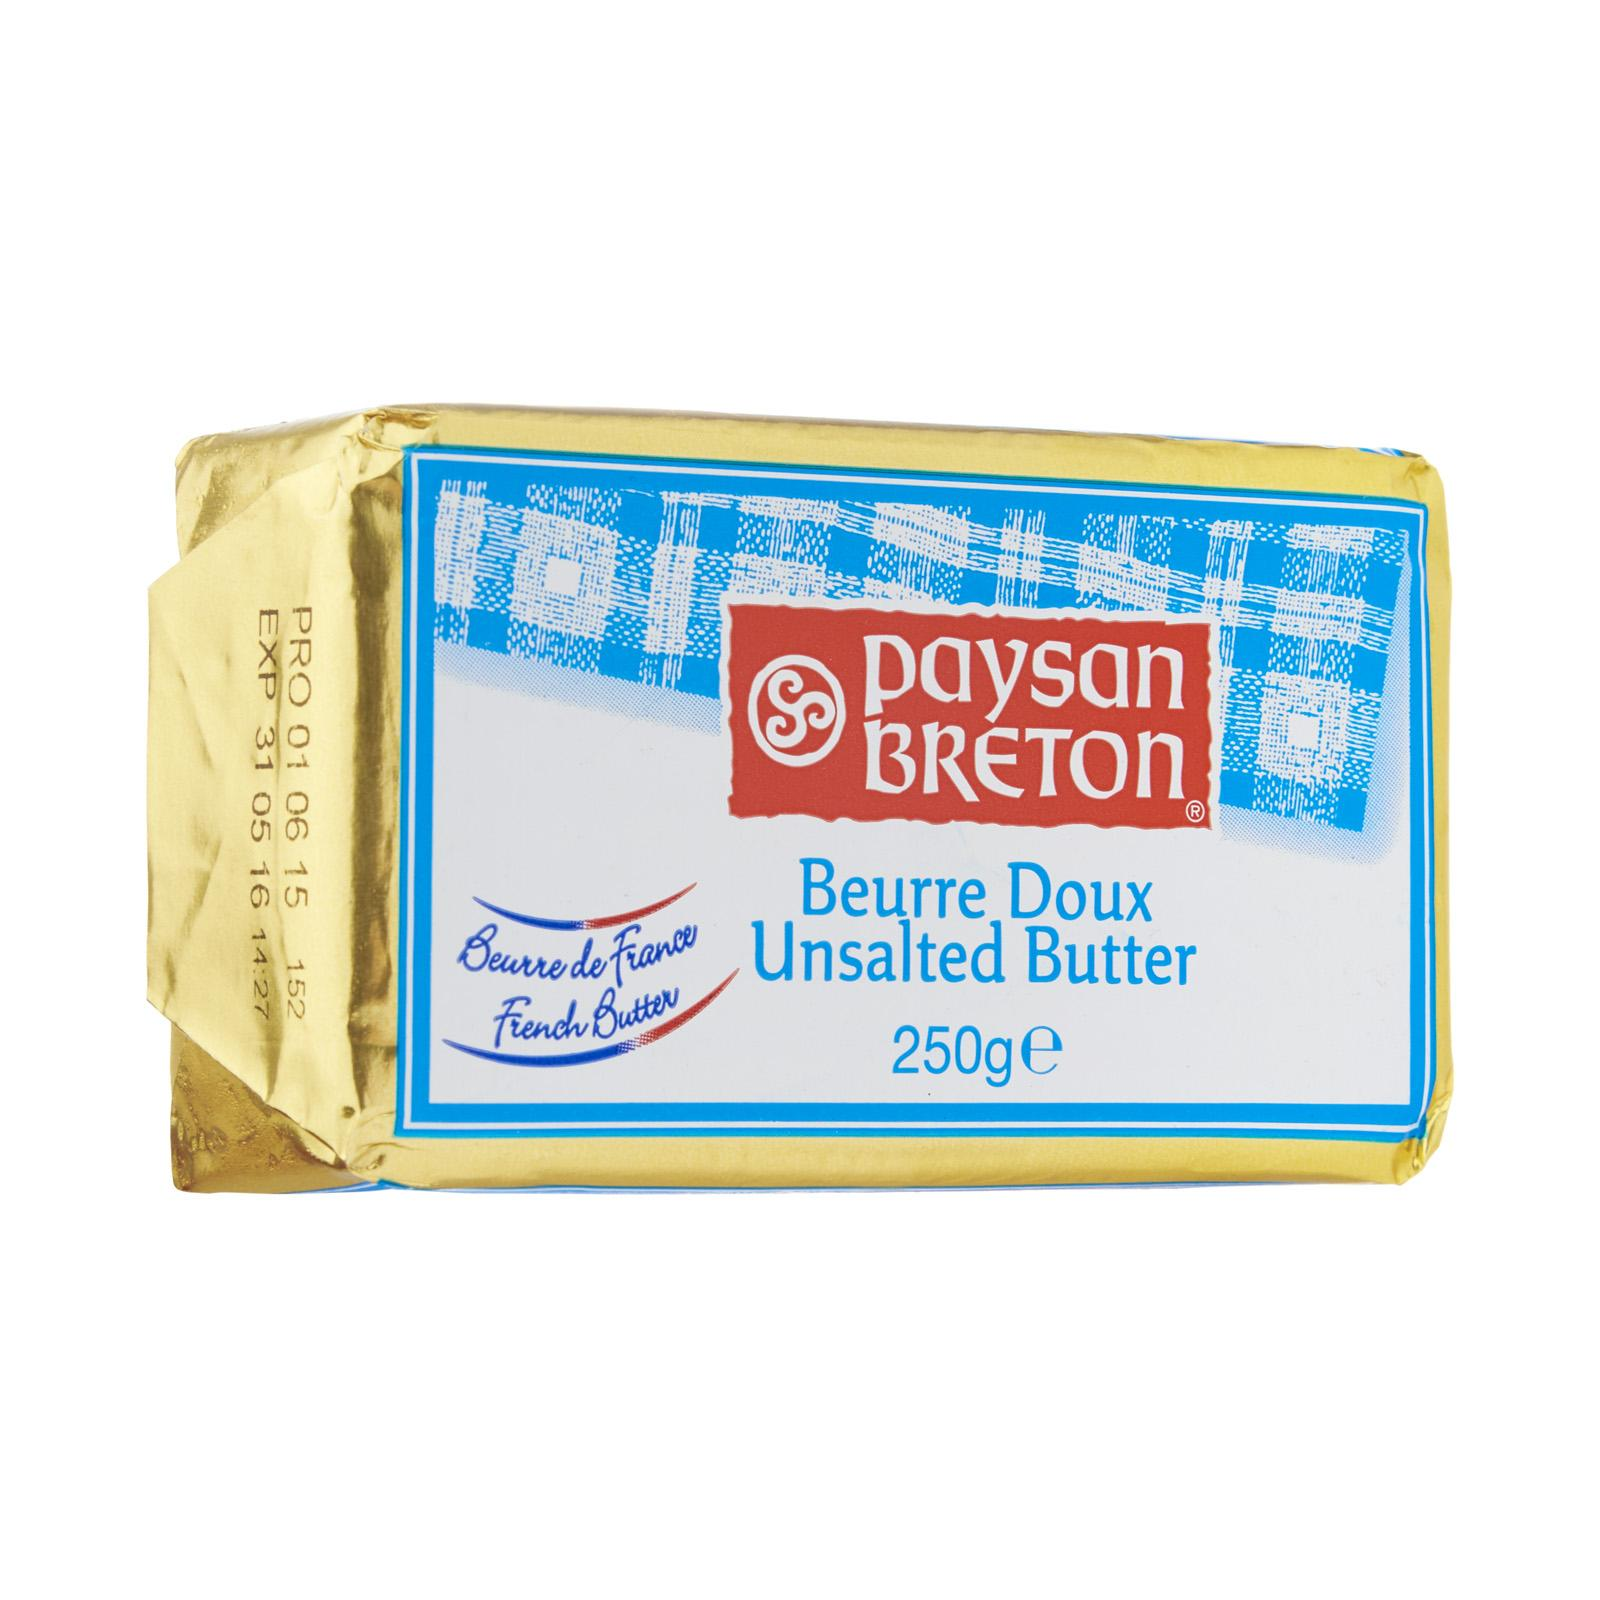 Paysan Breton Unsalted Butter By Redmart.